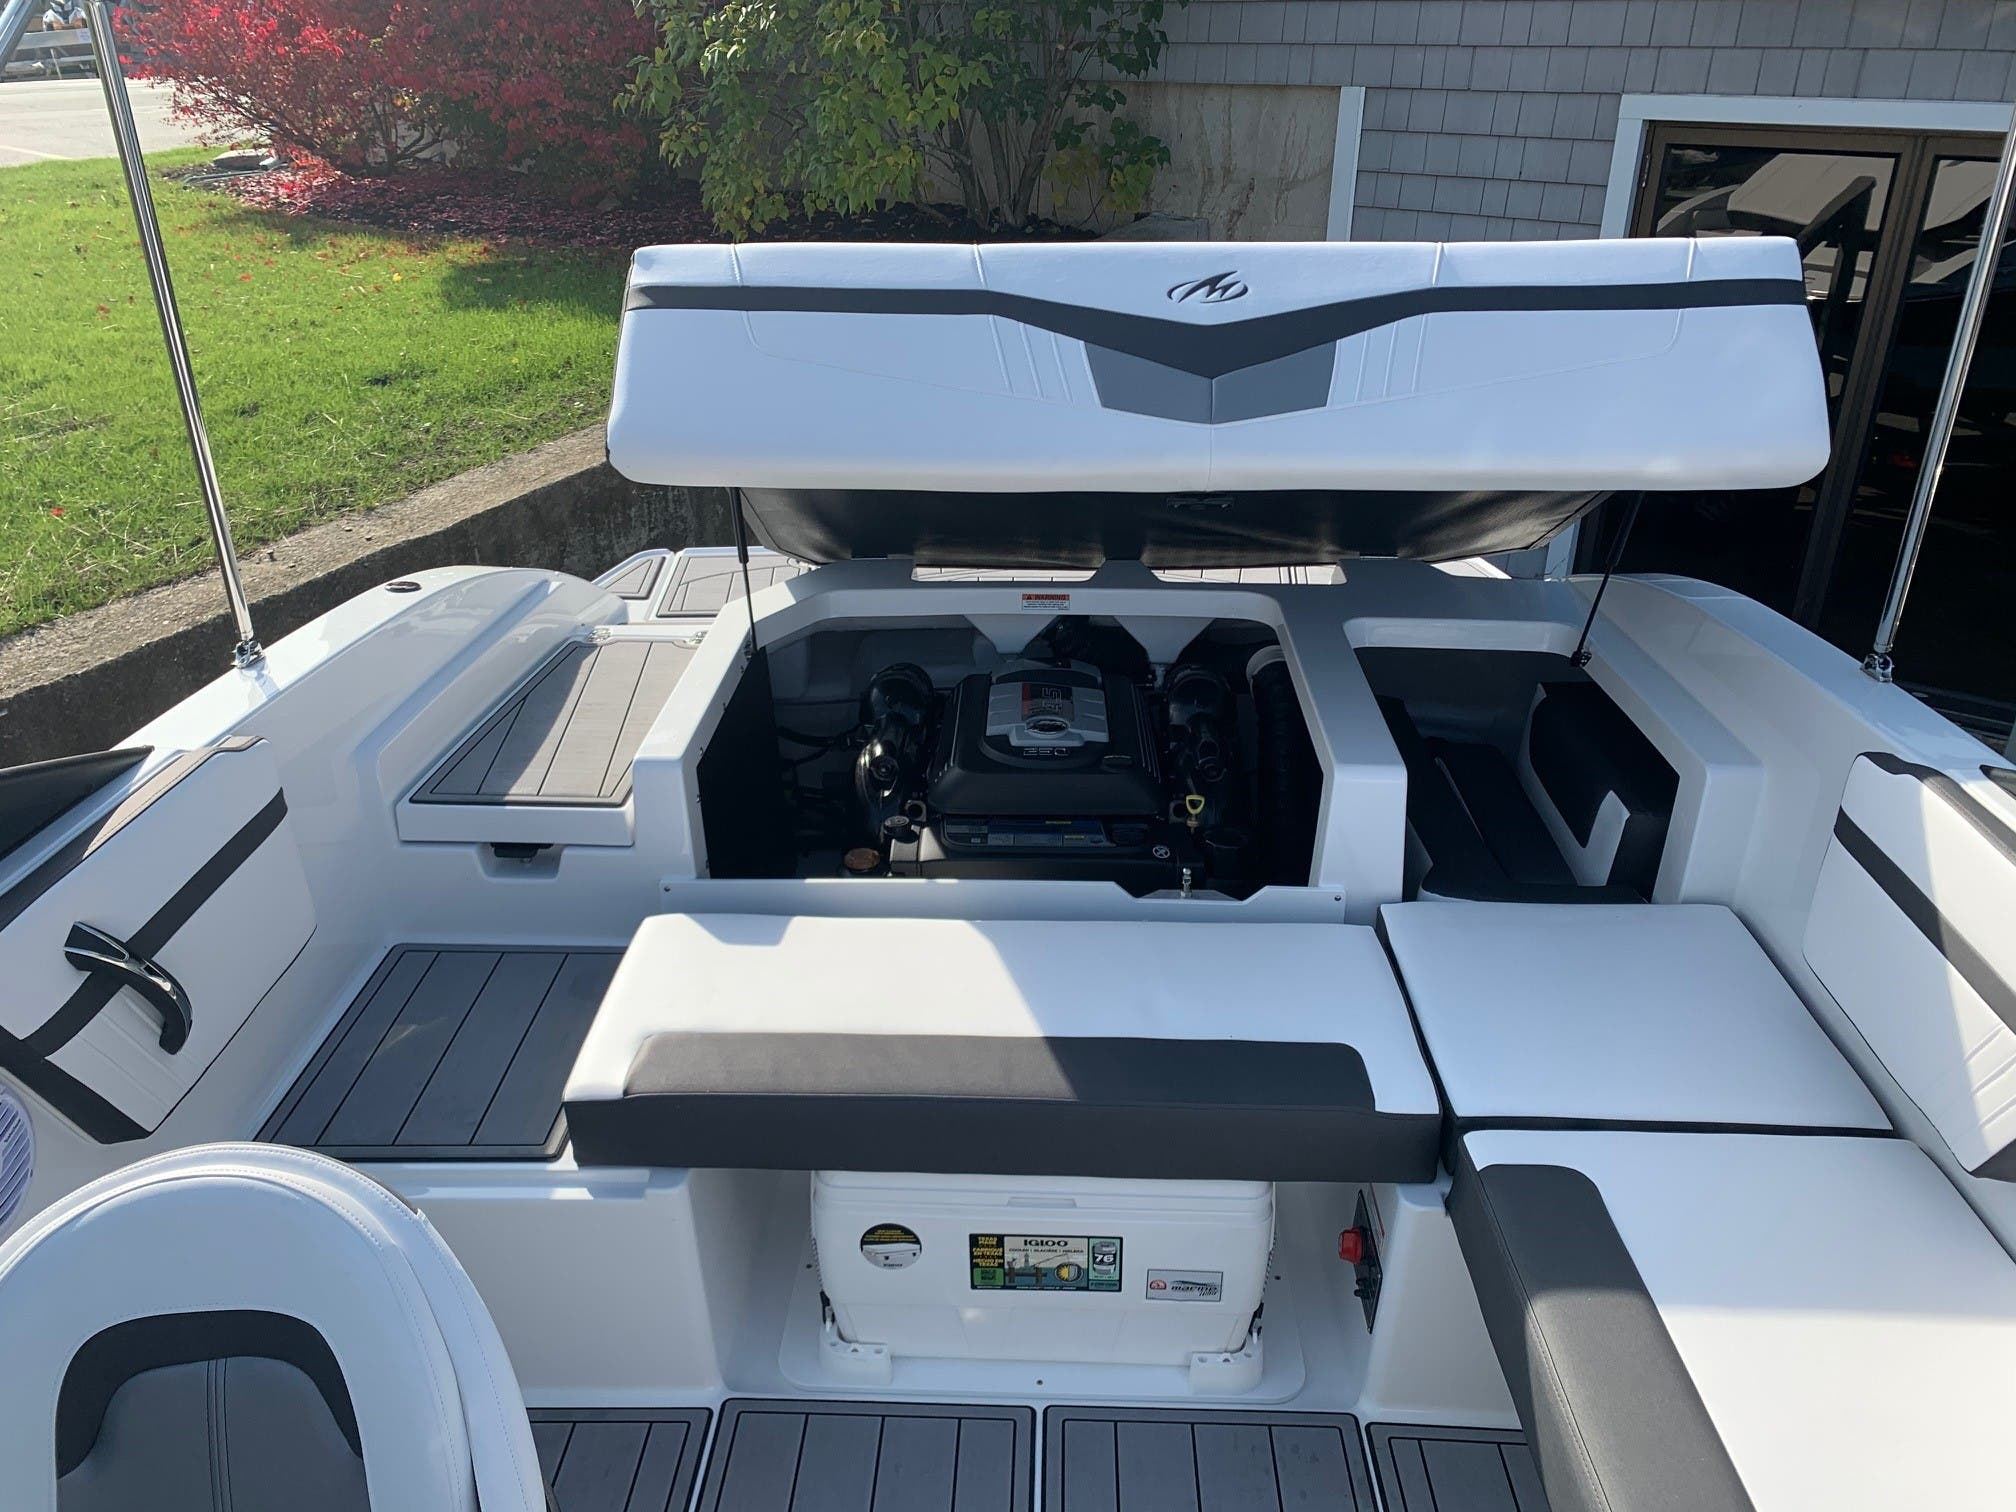 2021 Monterey boat for sale, model of the boat is M 22 & Image # 9 of 13